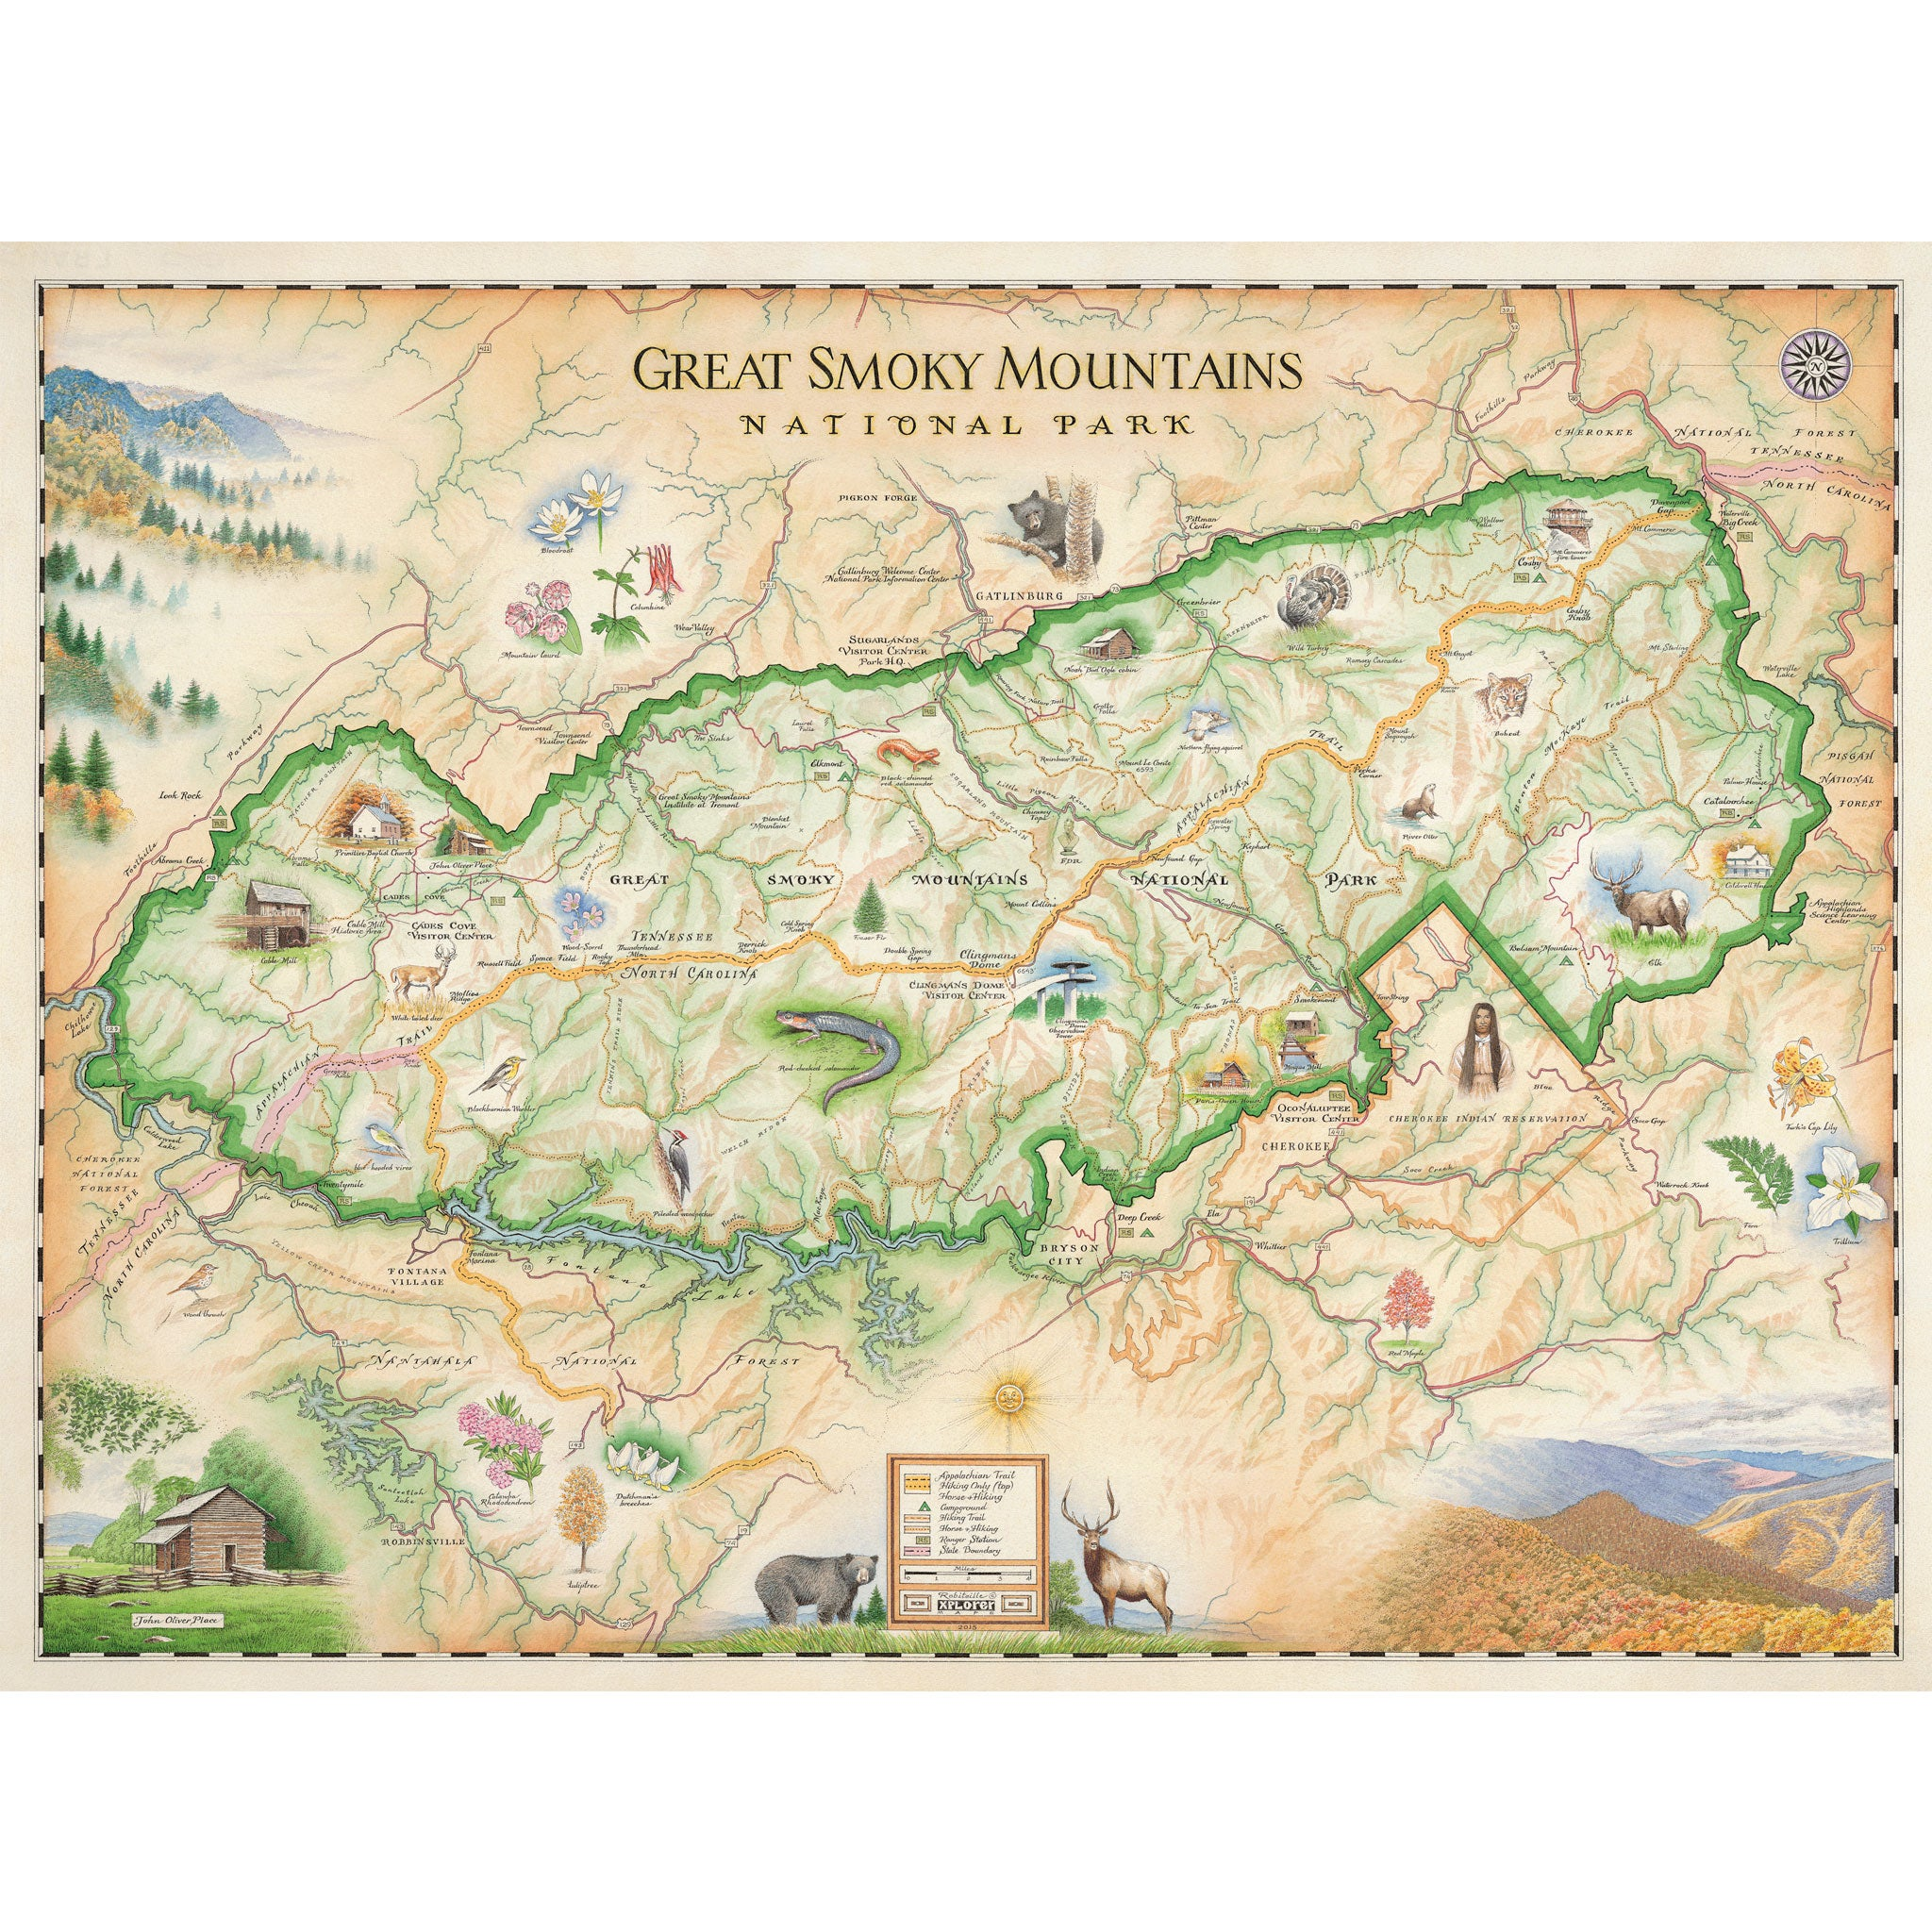 Great Smoky Mountains National Park Map - Xplorer Maps